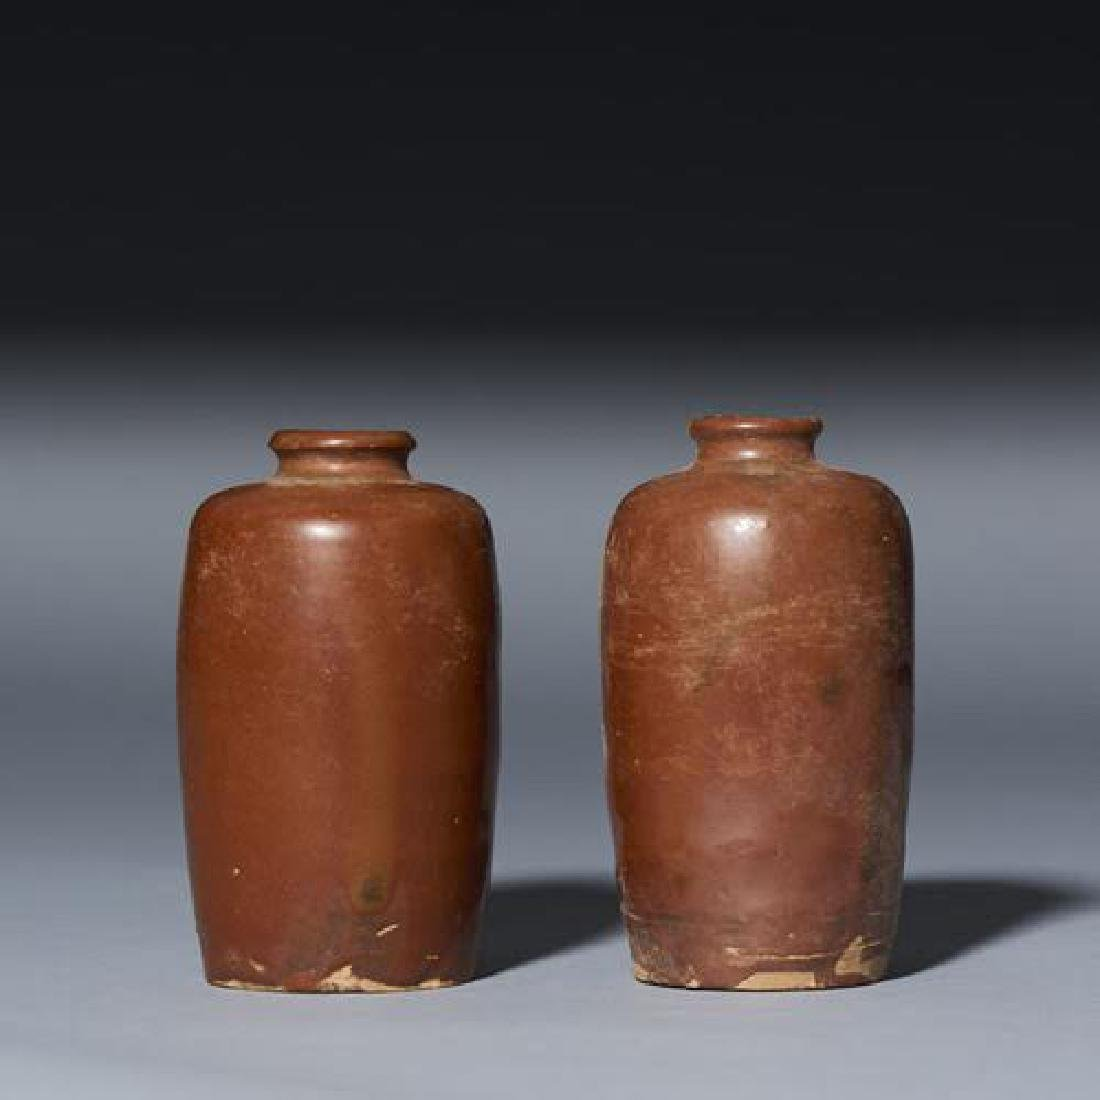 PAIR CHINESE ANTIQUE BROWN GLAZED VASES - 4